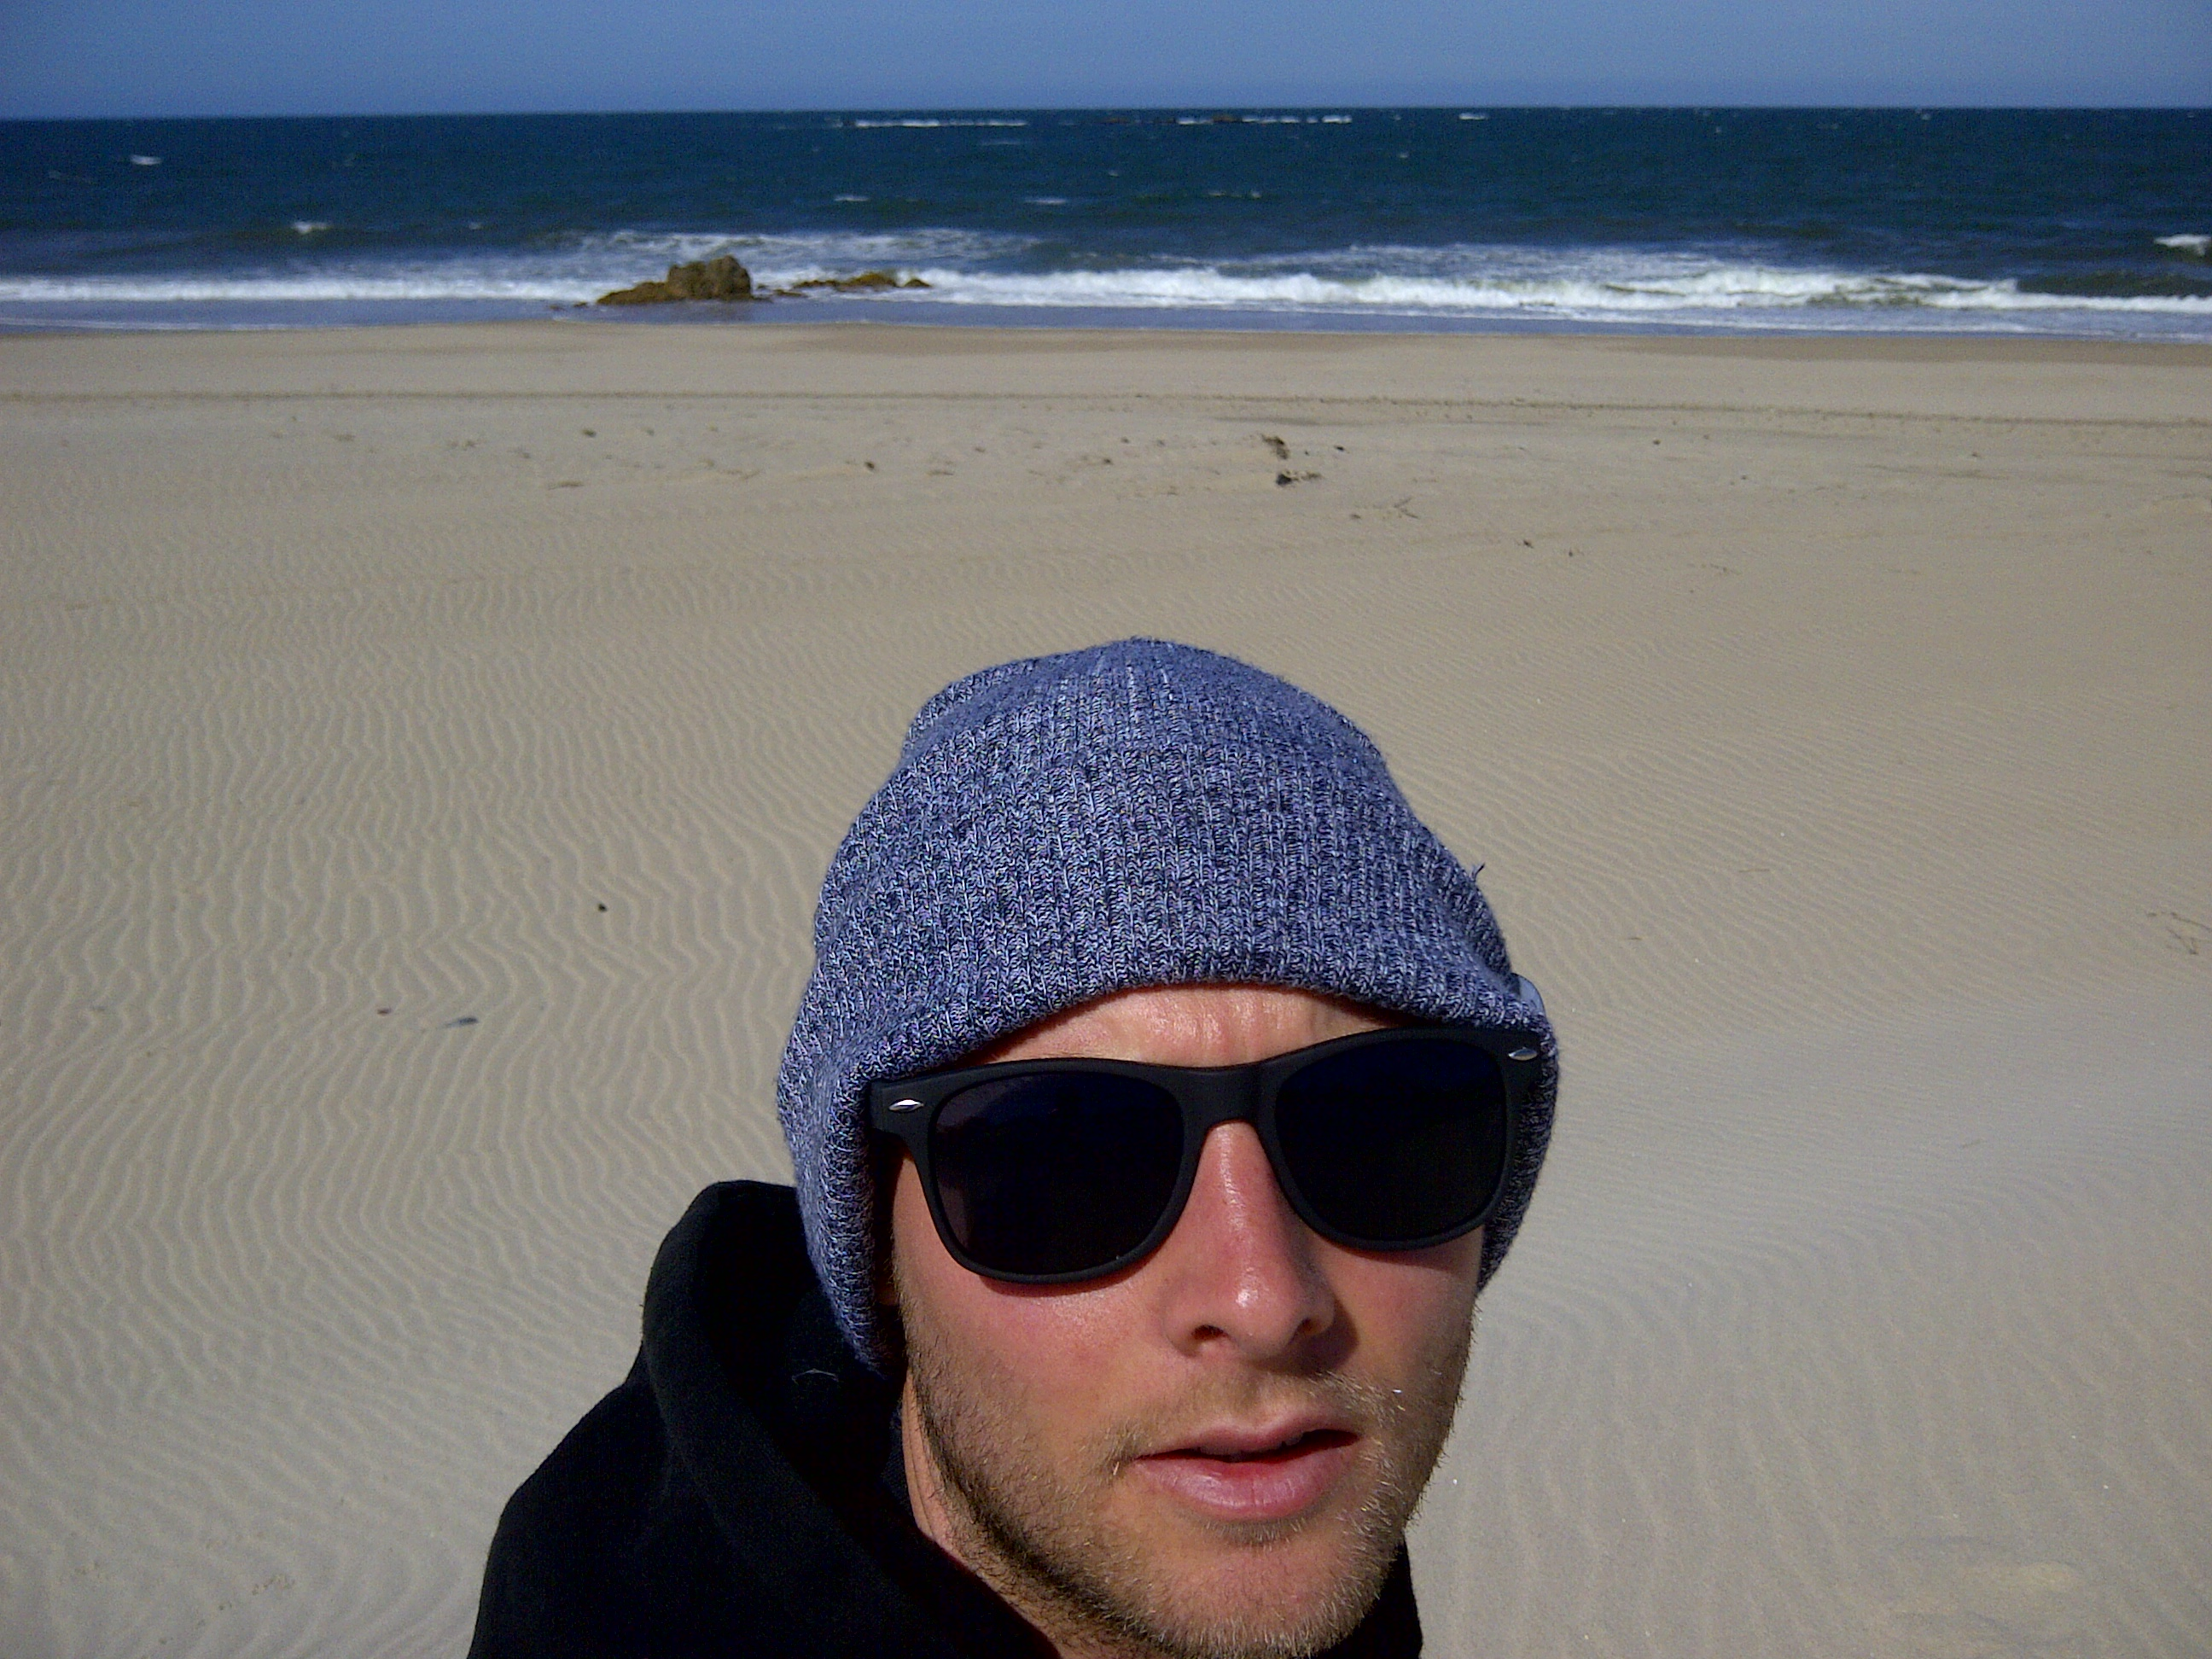 Me in Portugal!